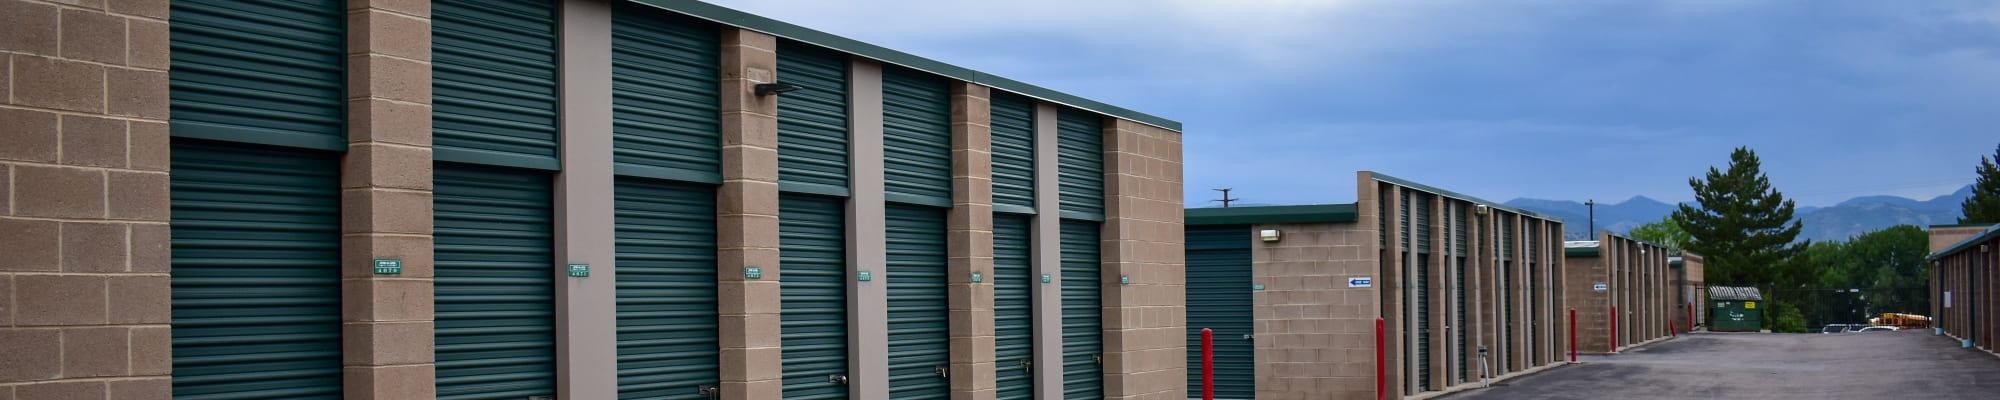 Contact us at STOR-N-LOCK Self Storage in Littleton, Colorado